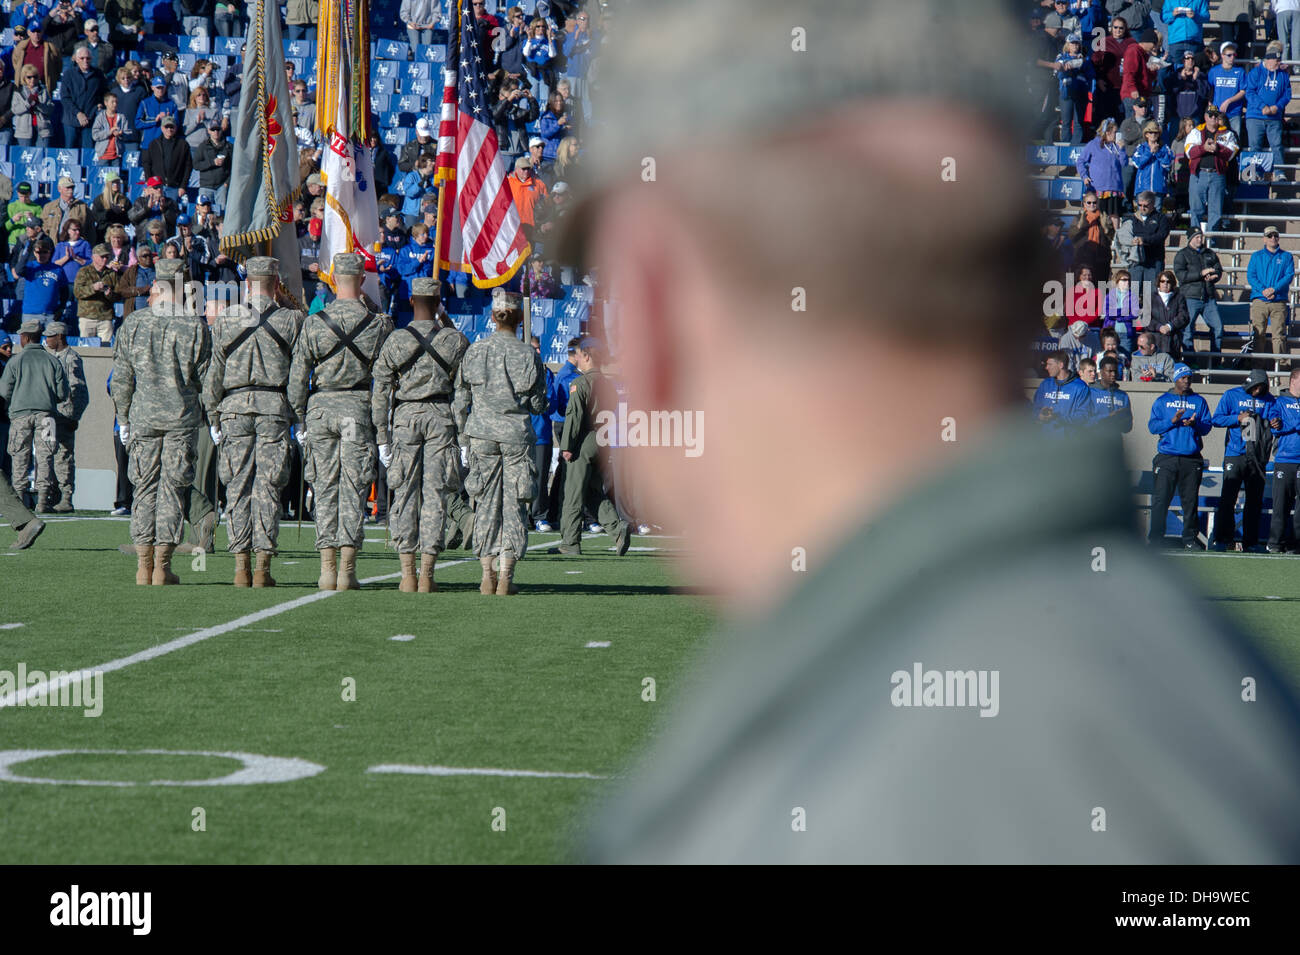 Chairman of the Joint Chiefs of Staff Gen. Martin E. Dempsey looks on as the flag detail marches on the field at Falcon Stadium - Stock Image